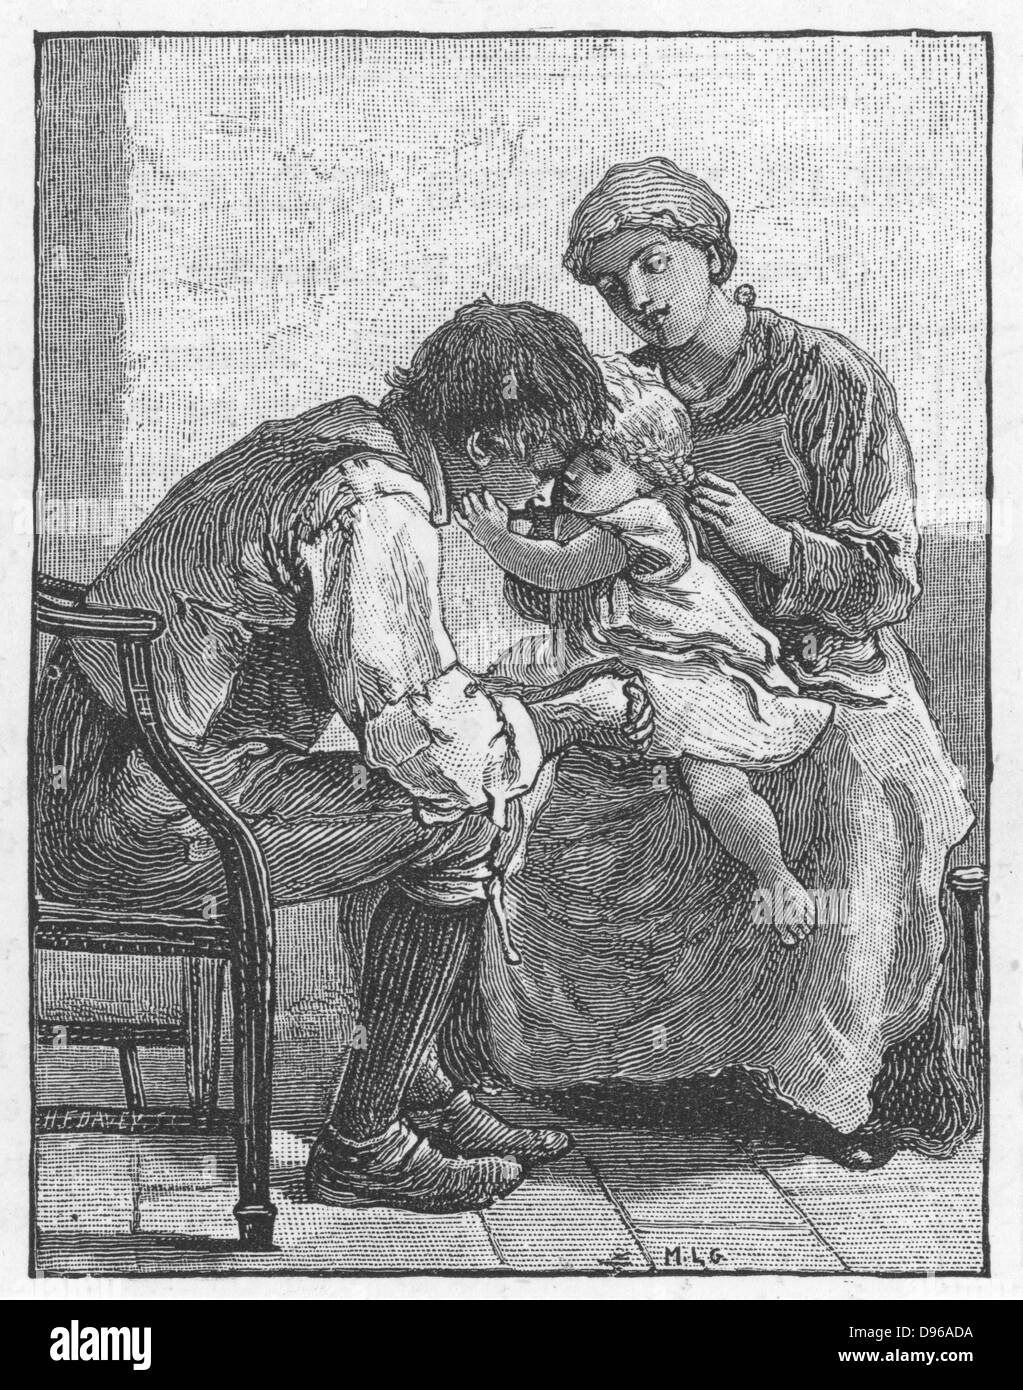 Silas Marner'  by George Eliot, 1861. Eppie the orphan, showing Silas Marner, the weaver, how much she likes - Stock Image